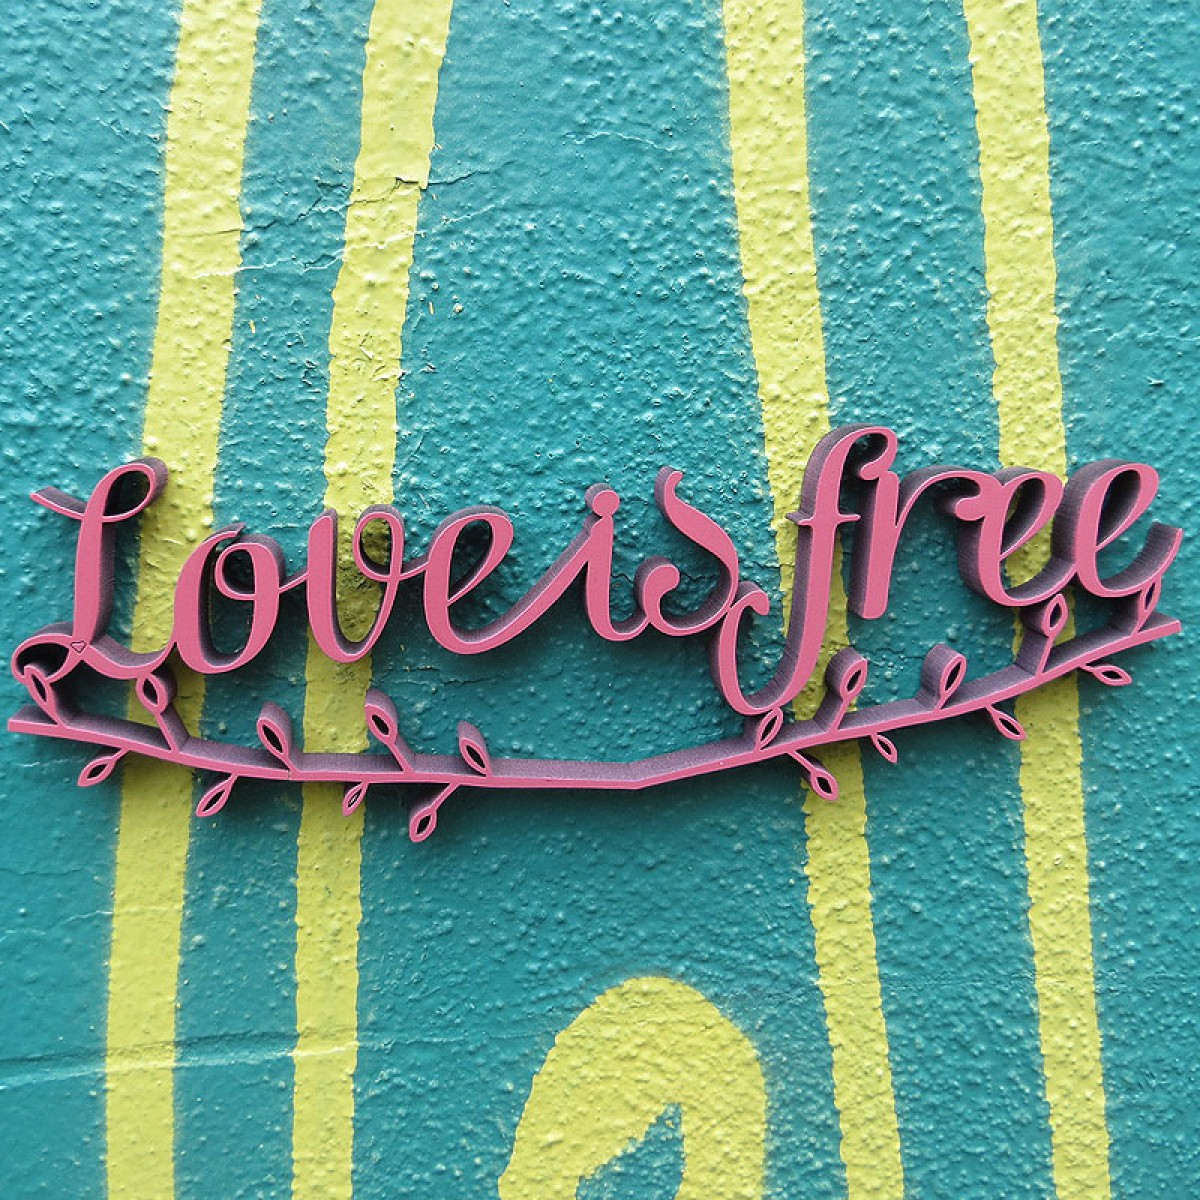 Love is free - Holzschrift - 3D